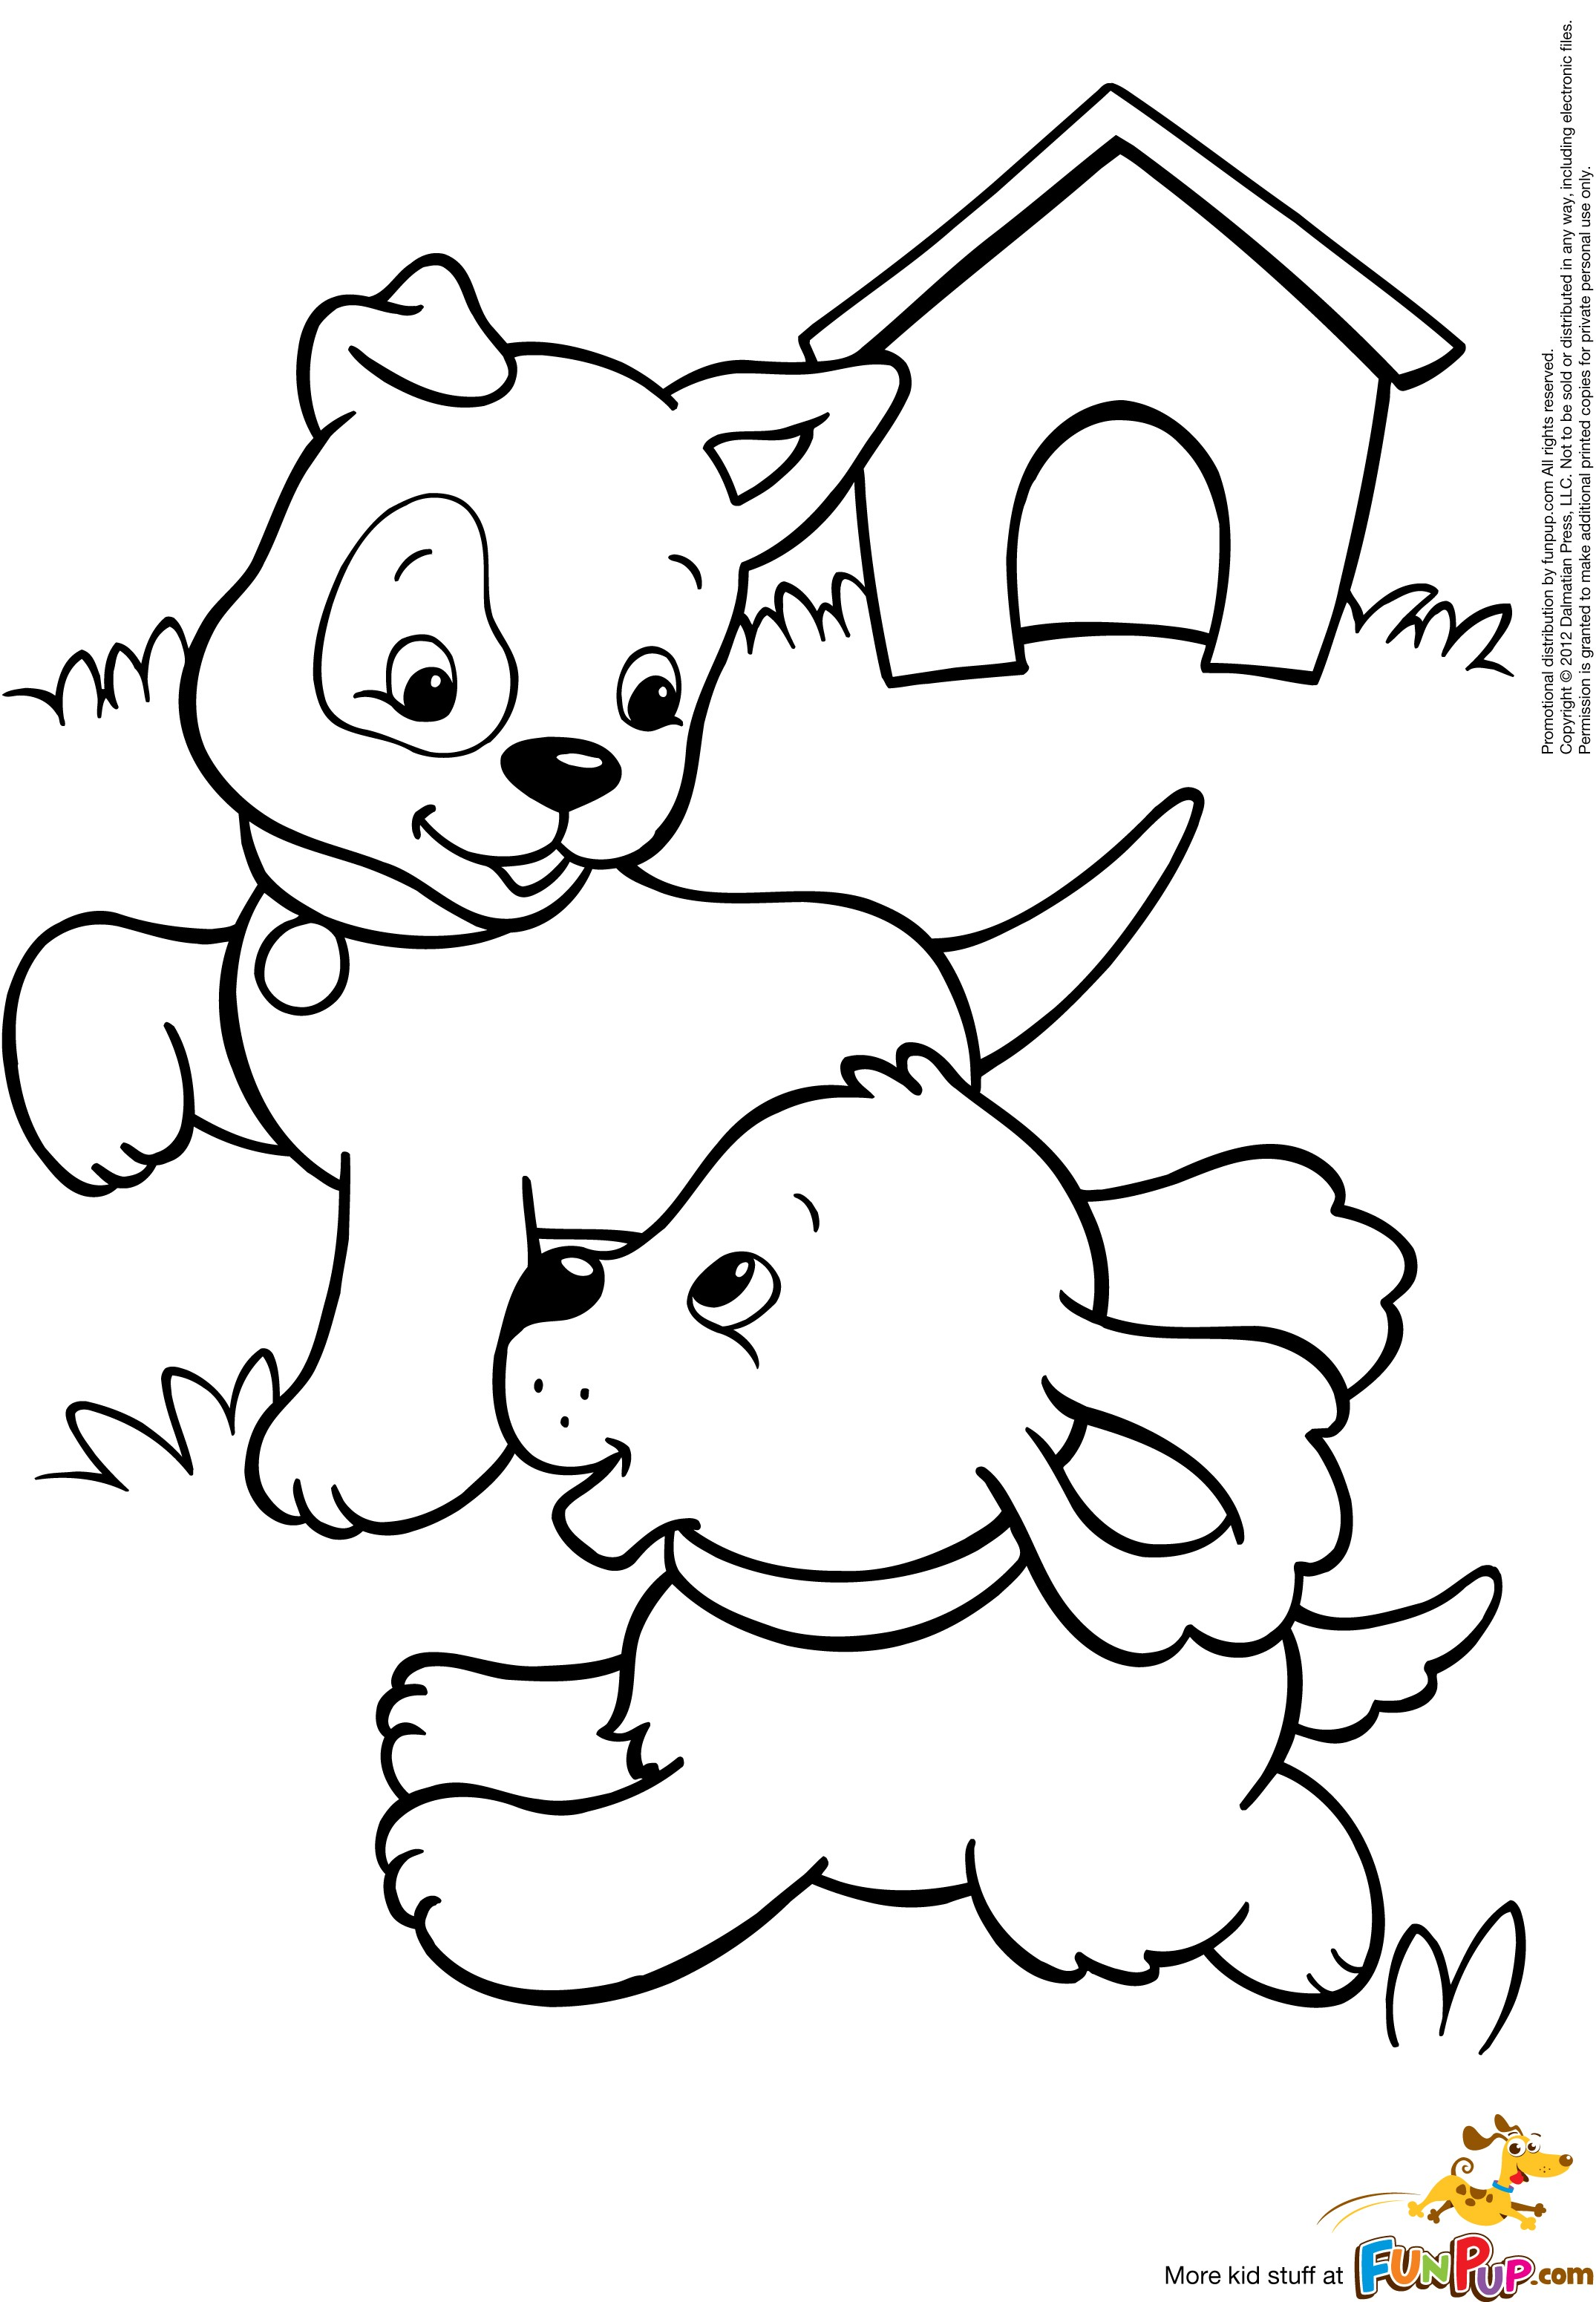 printable puppy pictures realistic puppy coloring pages download and print for free printable pictures puppy